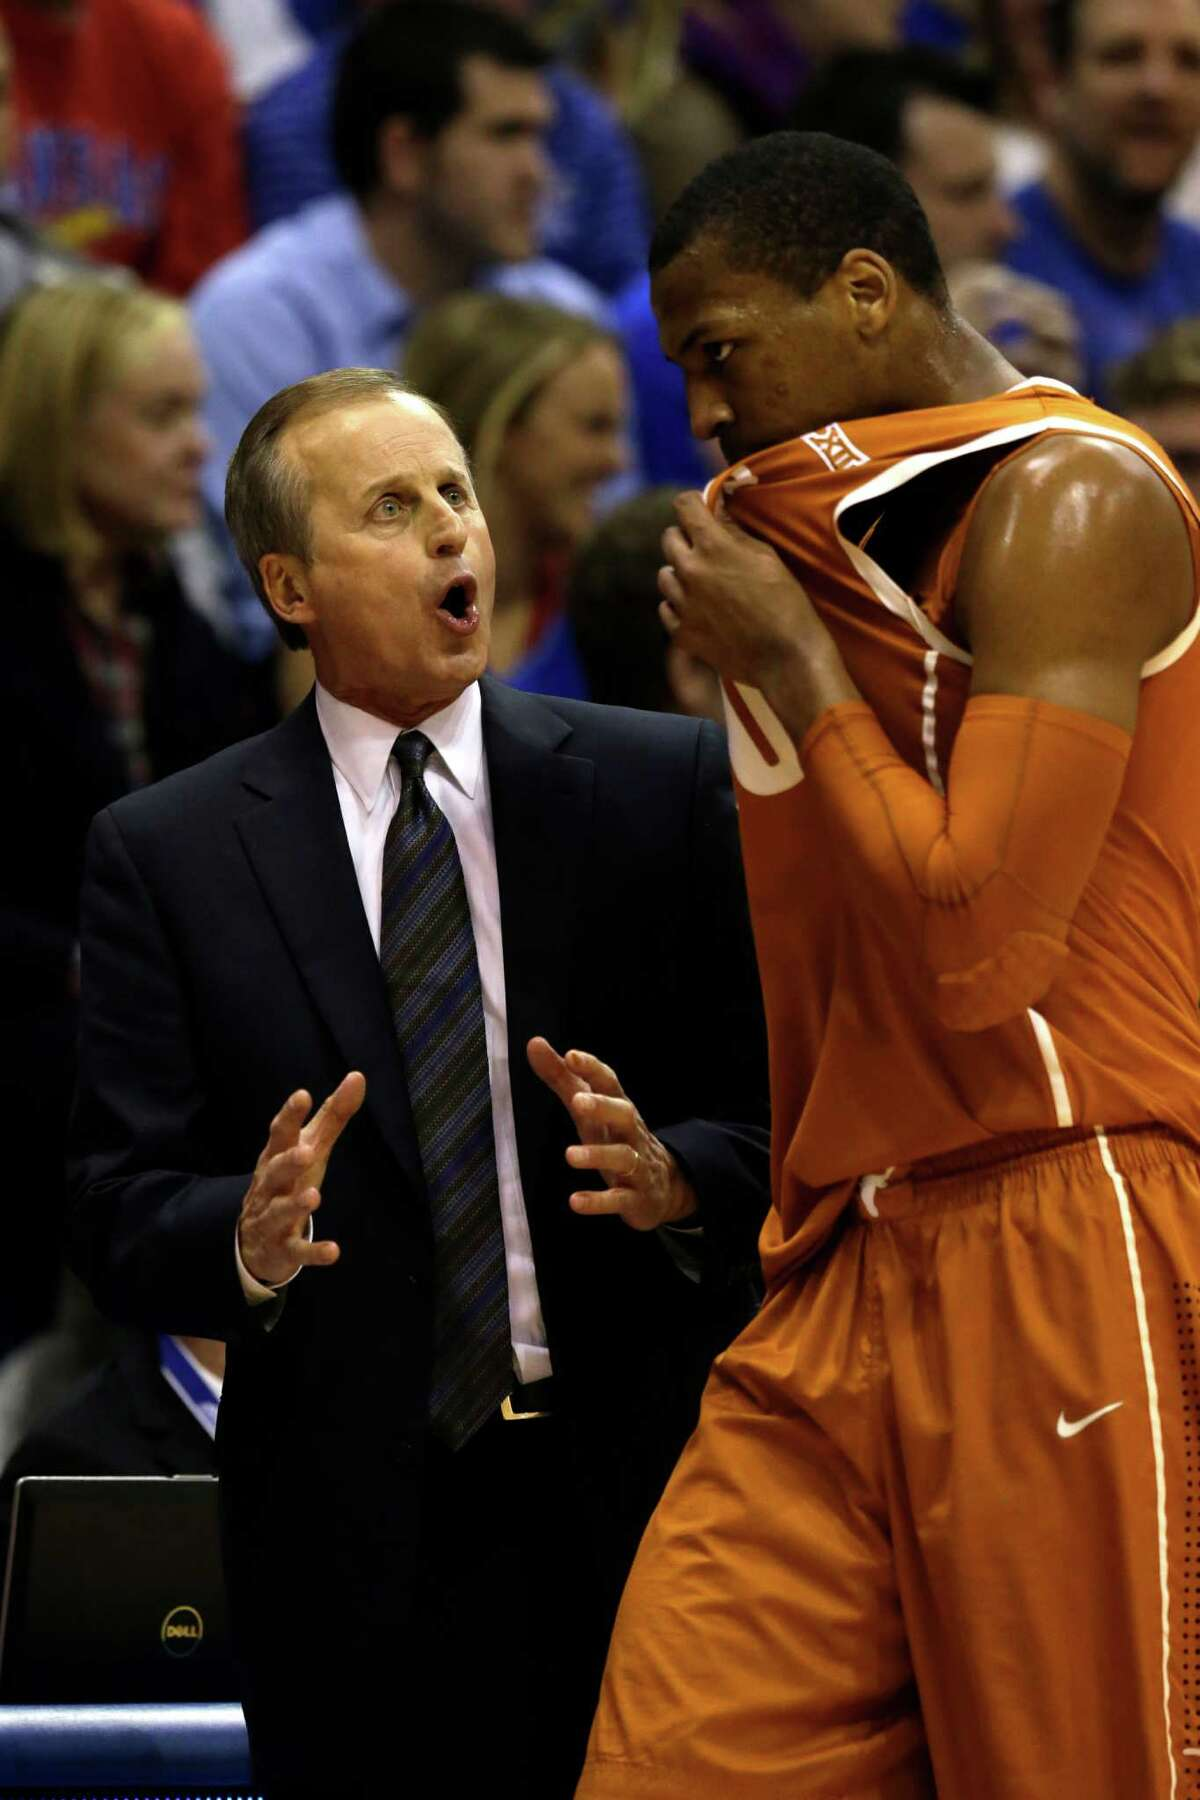 Texas head coach Rick Barnes and forward Jonathan Holmes (10) during the first half of an NCAA college basketball game at Allen Fieldhouse in Lawrence, Kan., Saturday, Feb. 28, 2015. (AP Photo/Orlin Wagner)